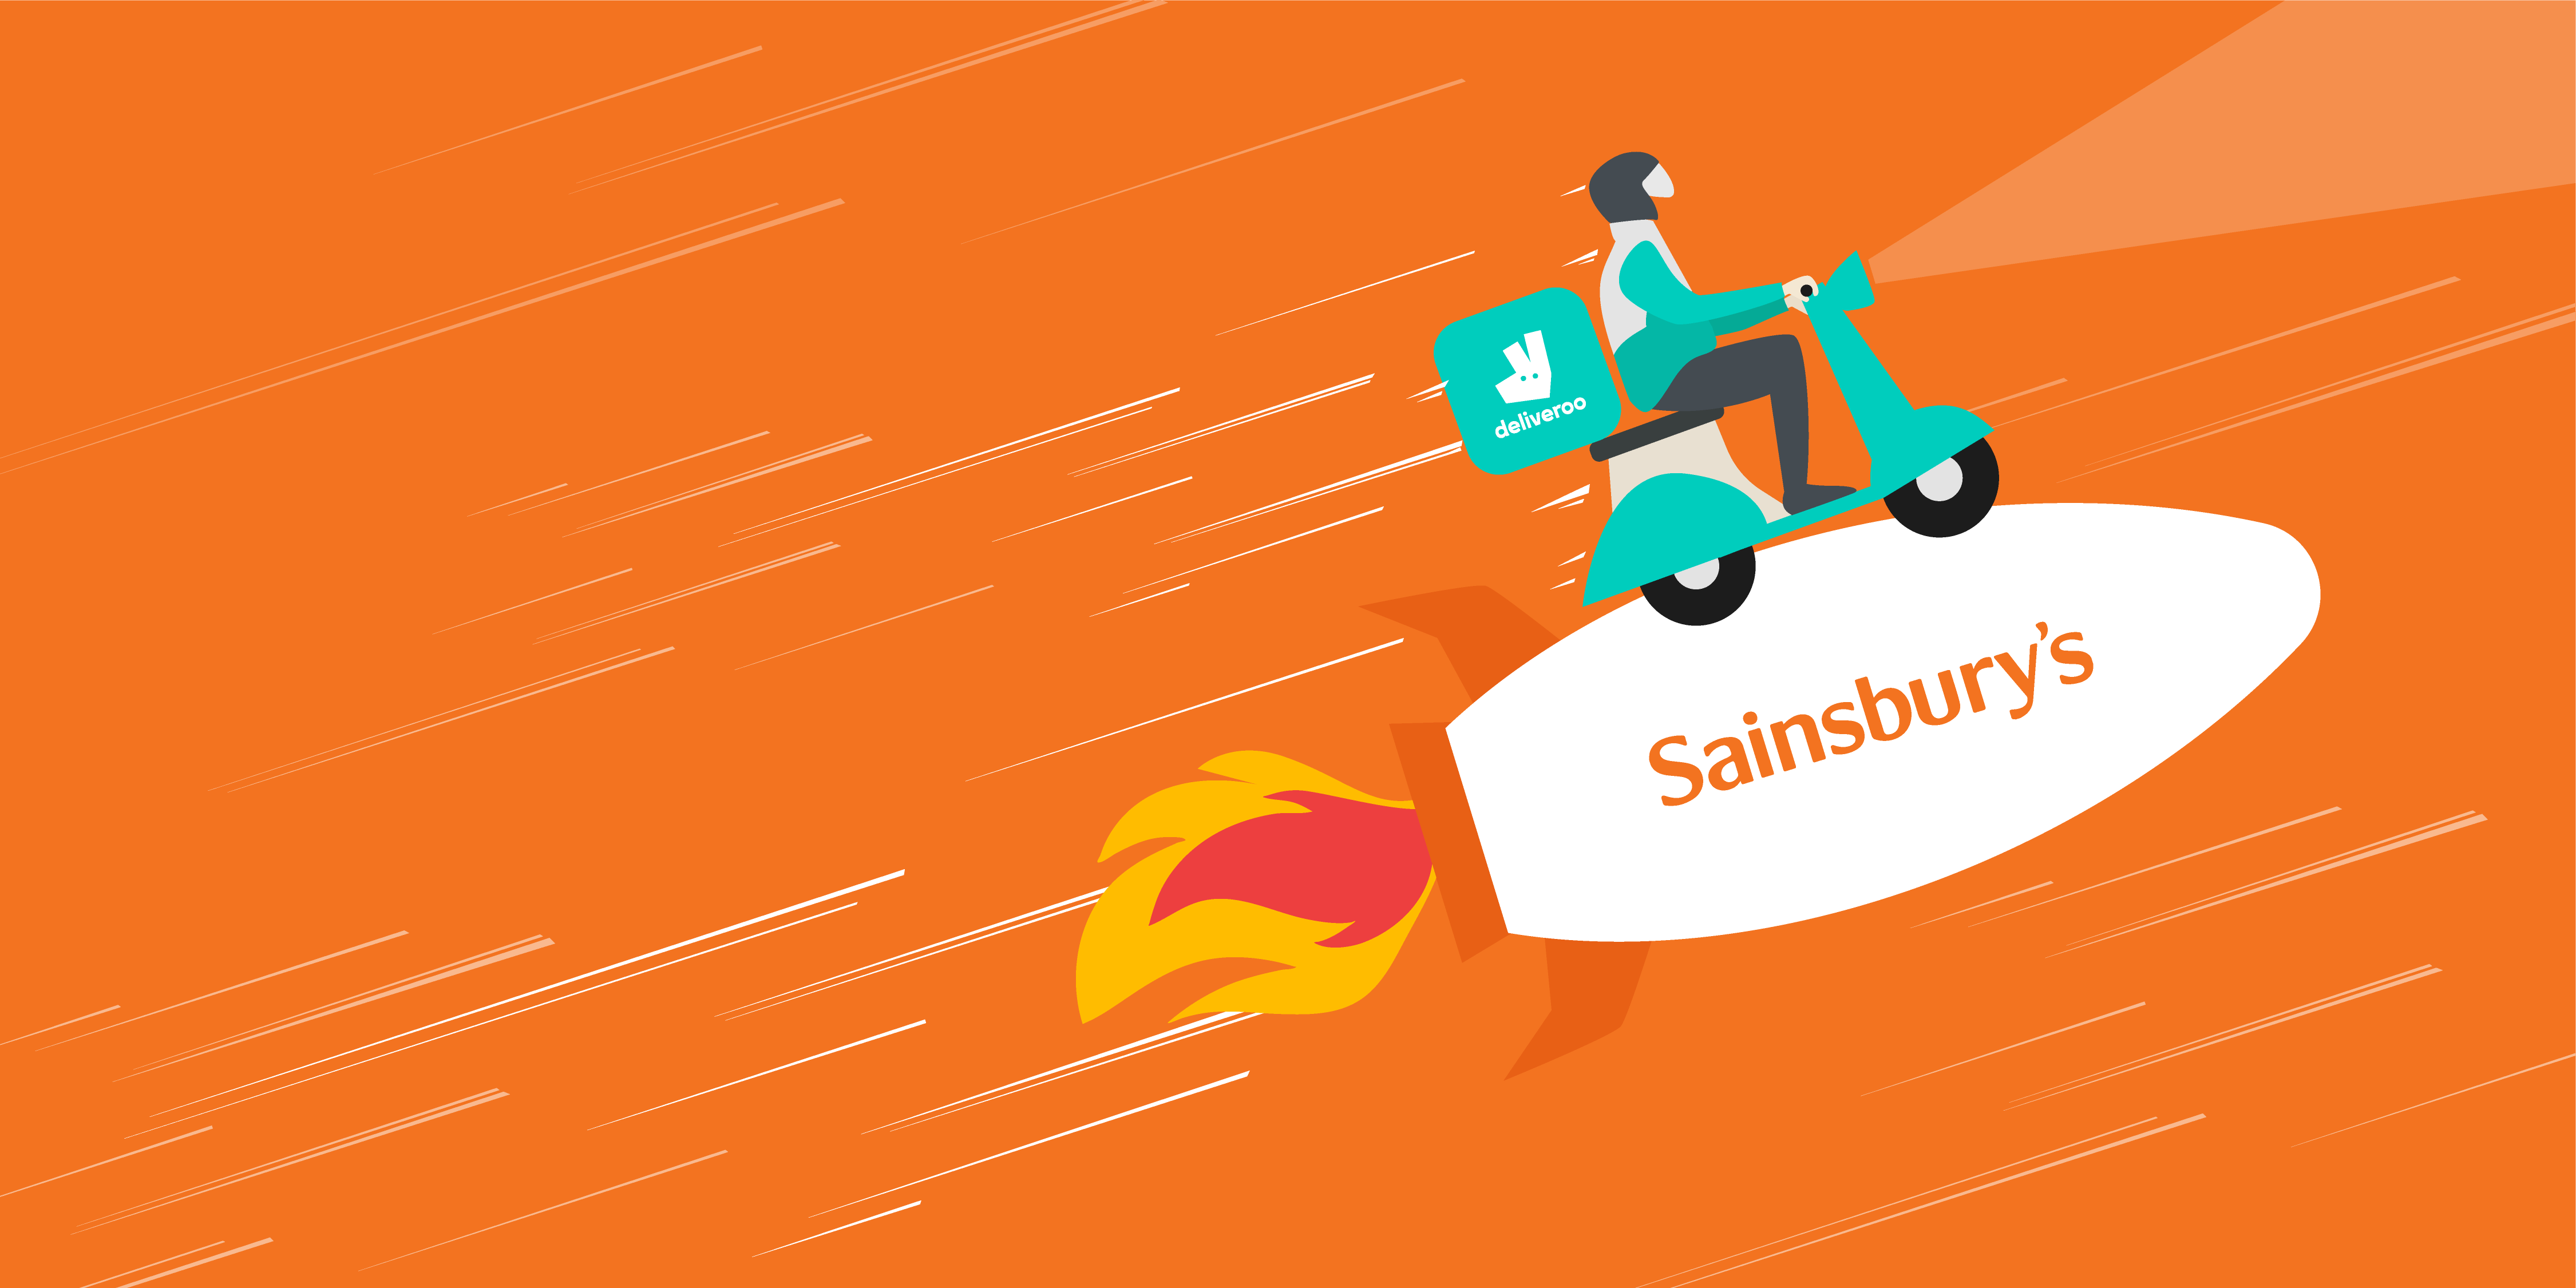 Why Deliveroo & Sainsbury's partnership is a great initiative